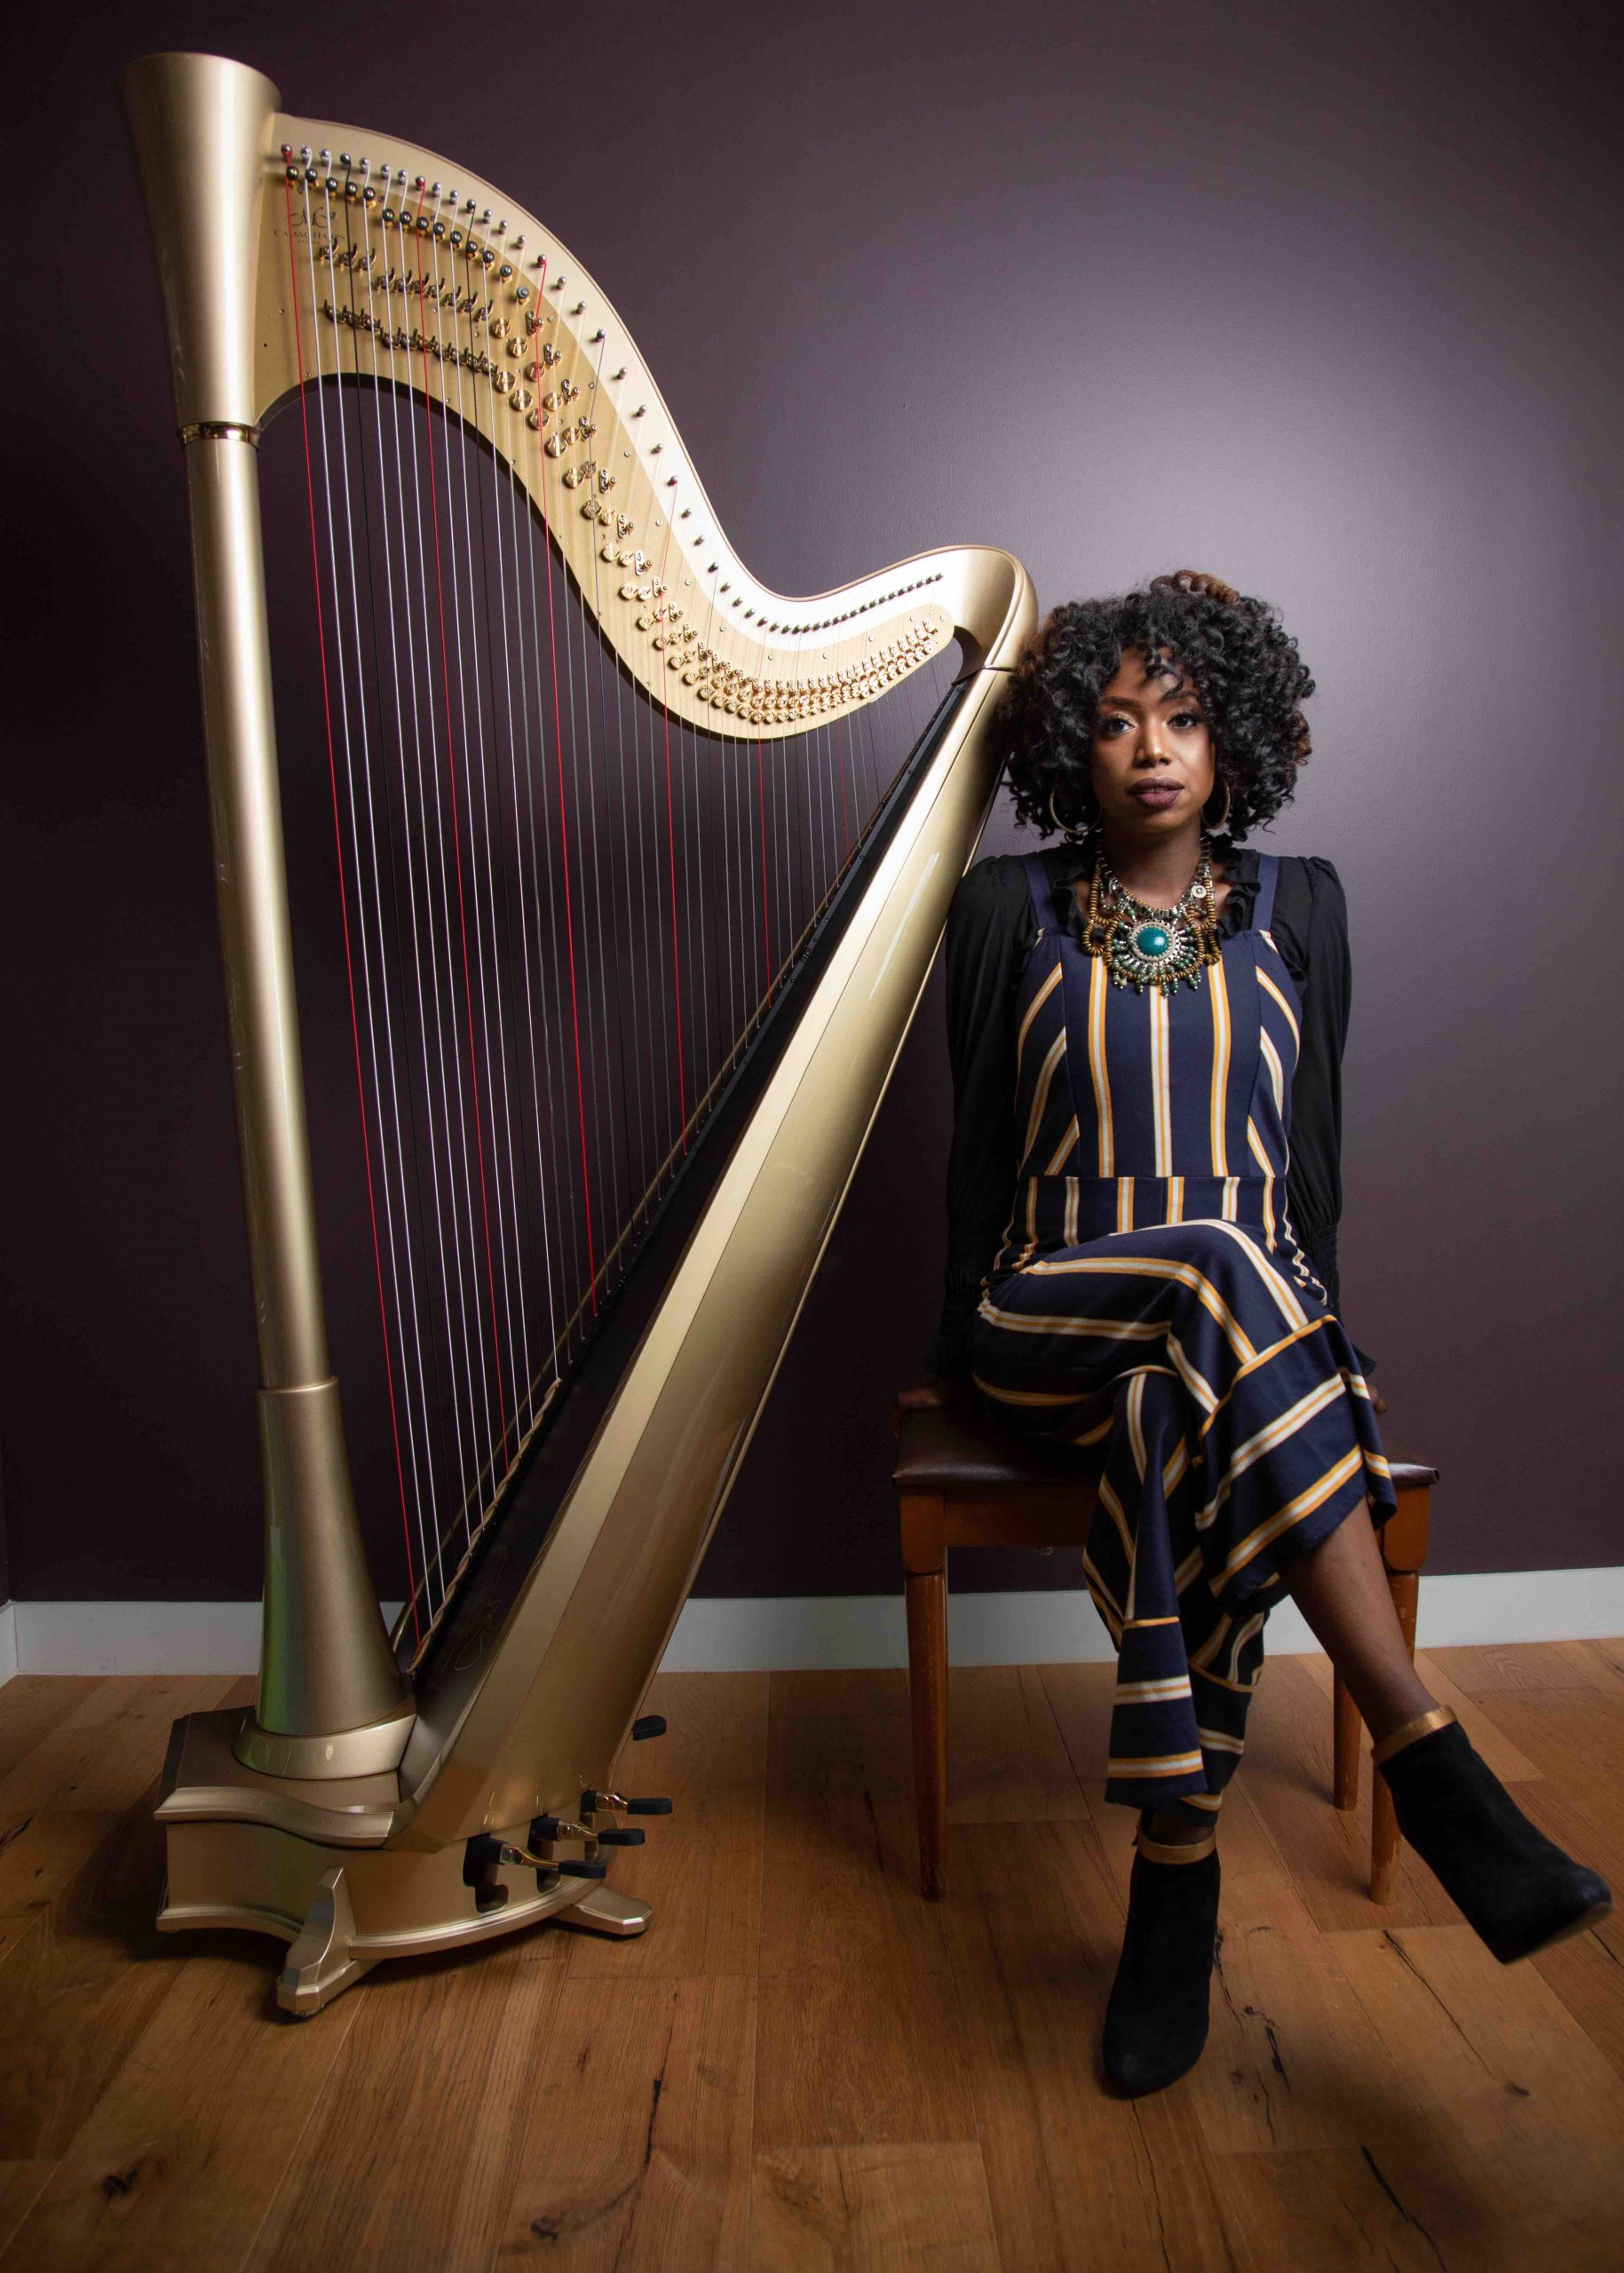 FEATURE: Brandee Younger: Paying Tribute to The Jazz Harpist Greats by She Shreds